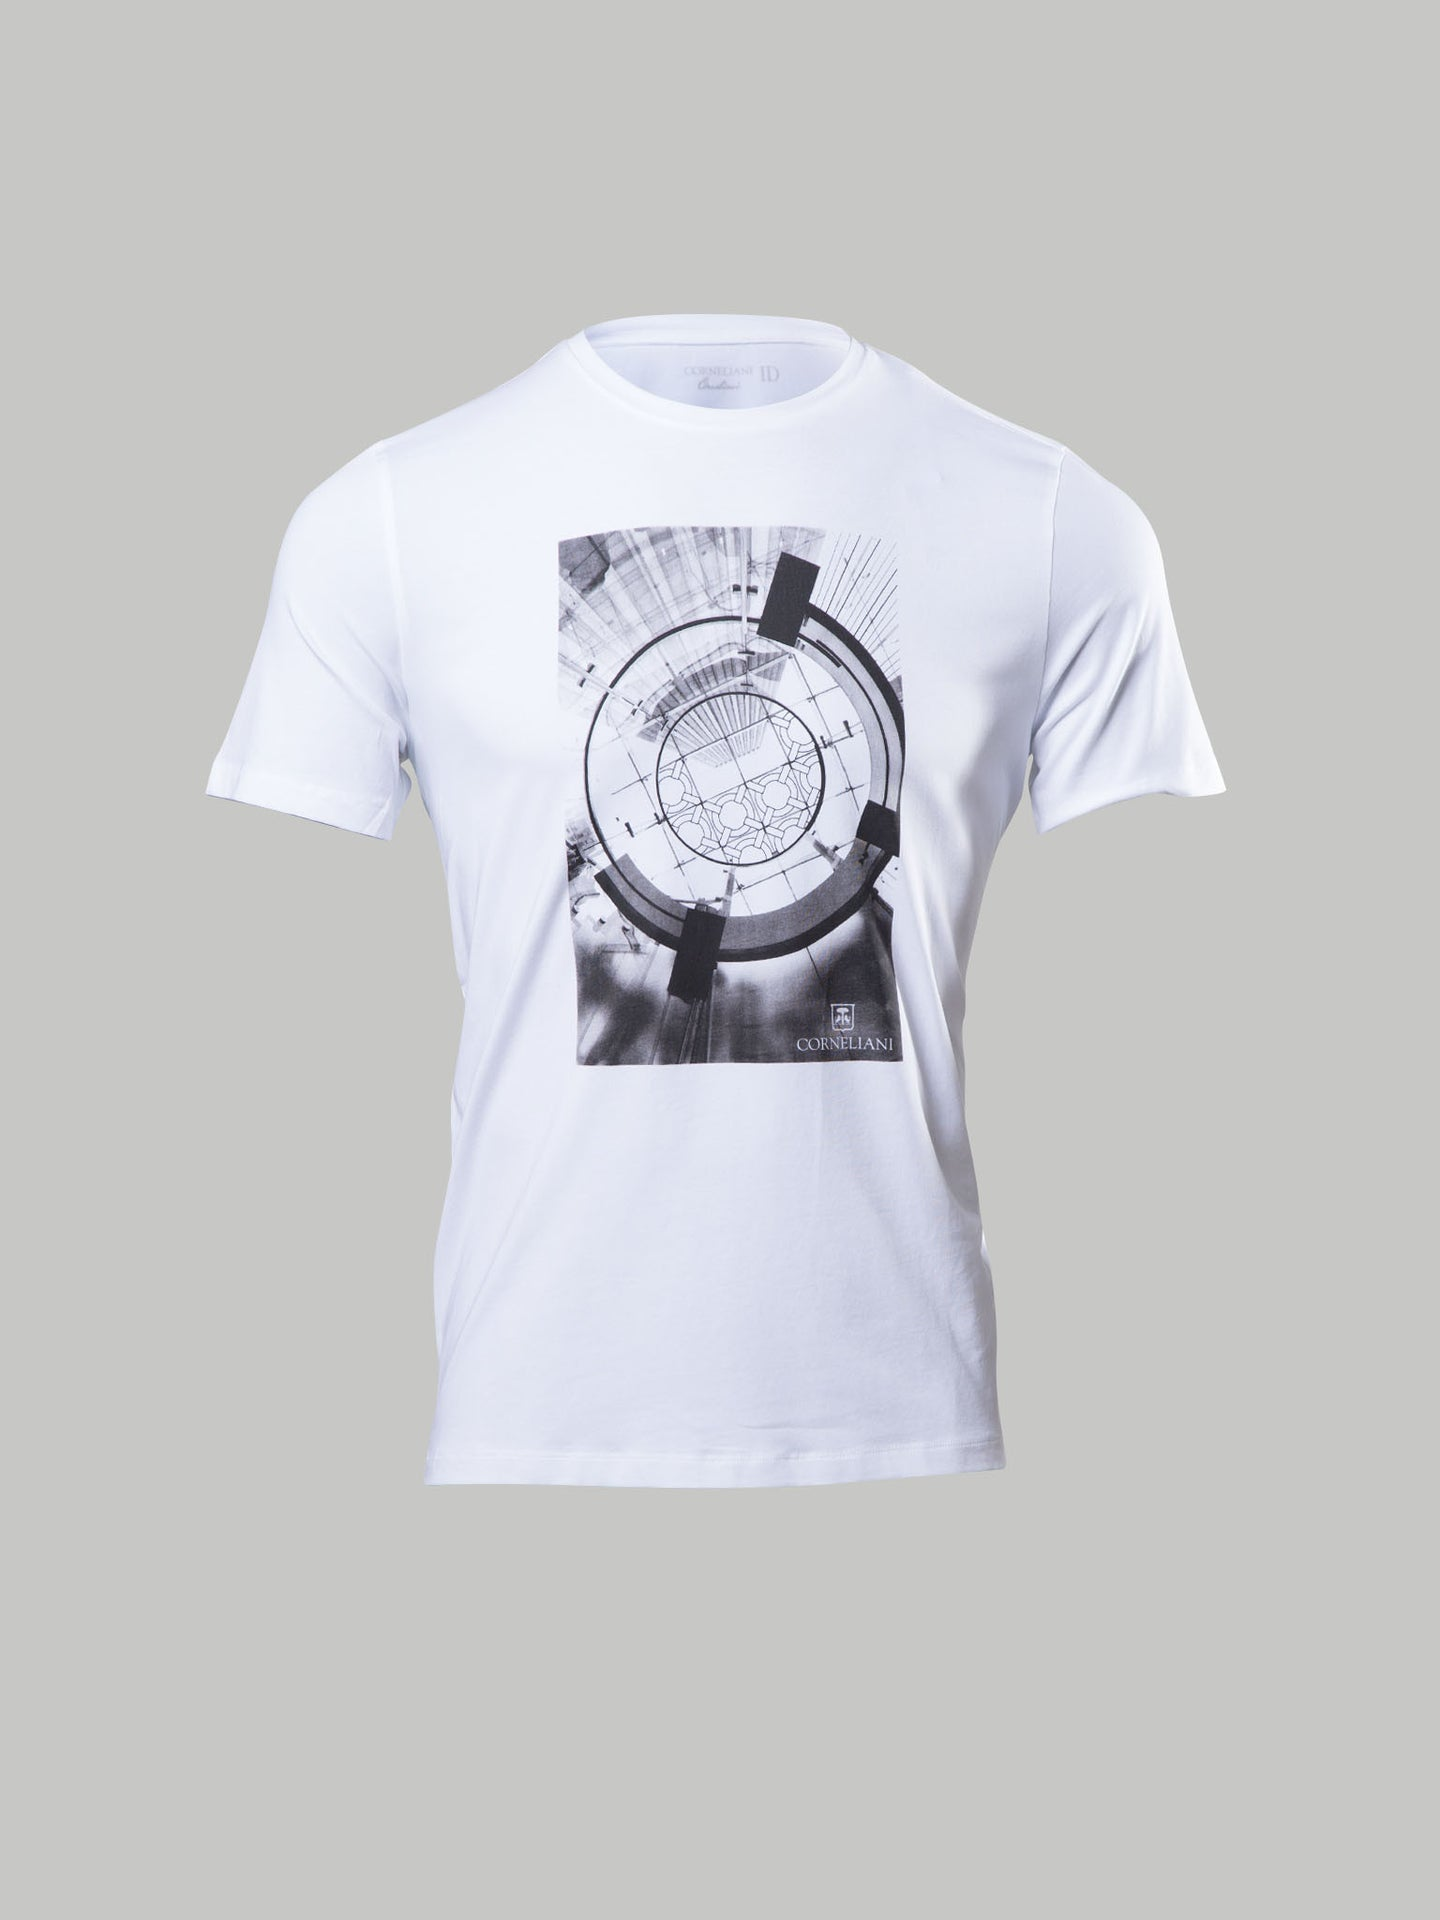 Corneliani Printed Detail Art T-Shirt (White)